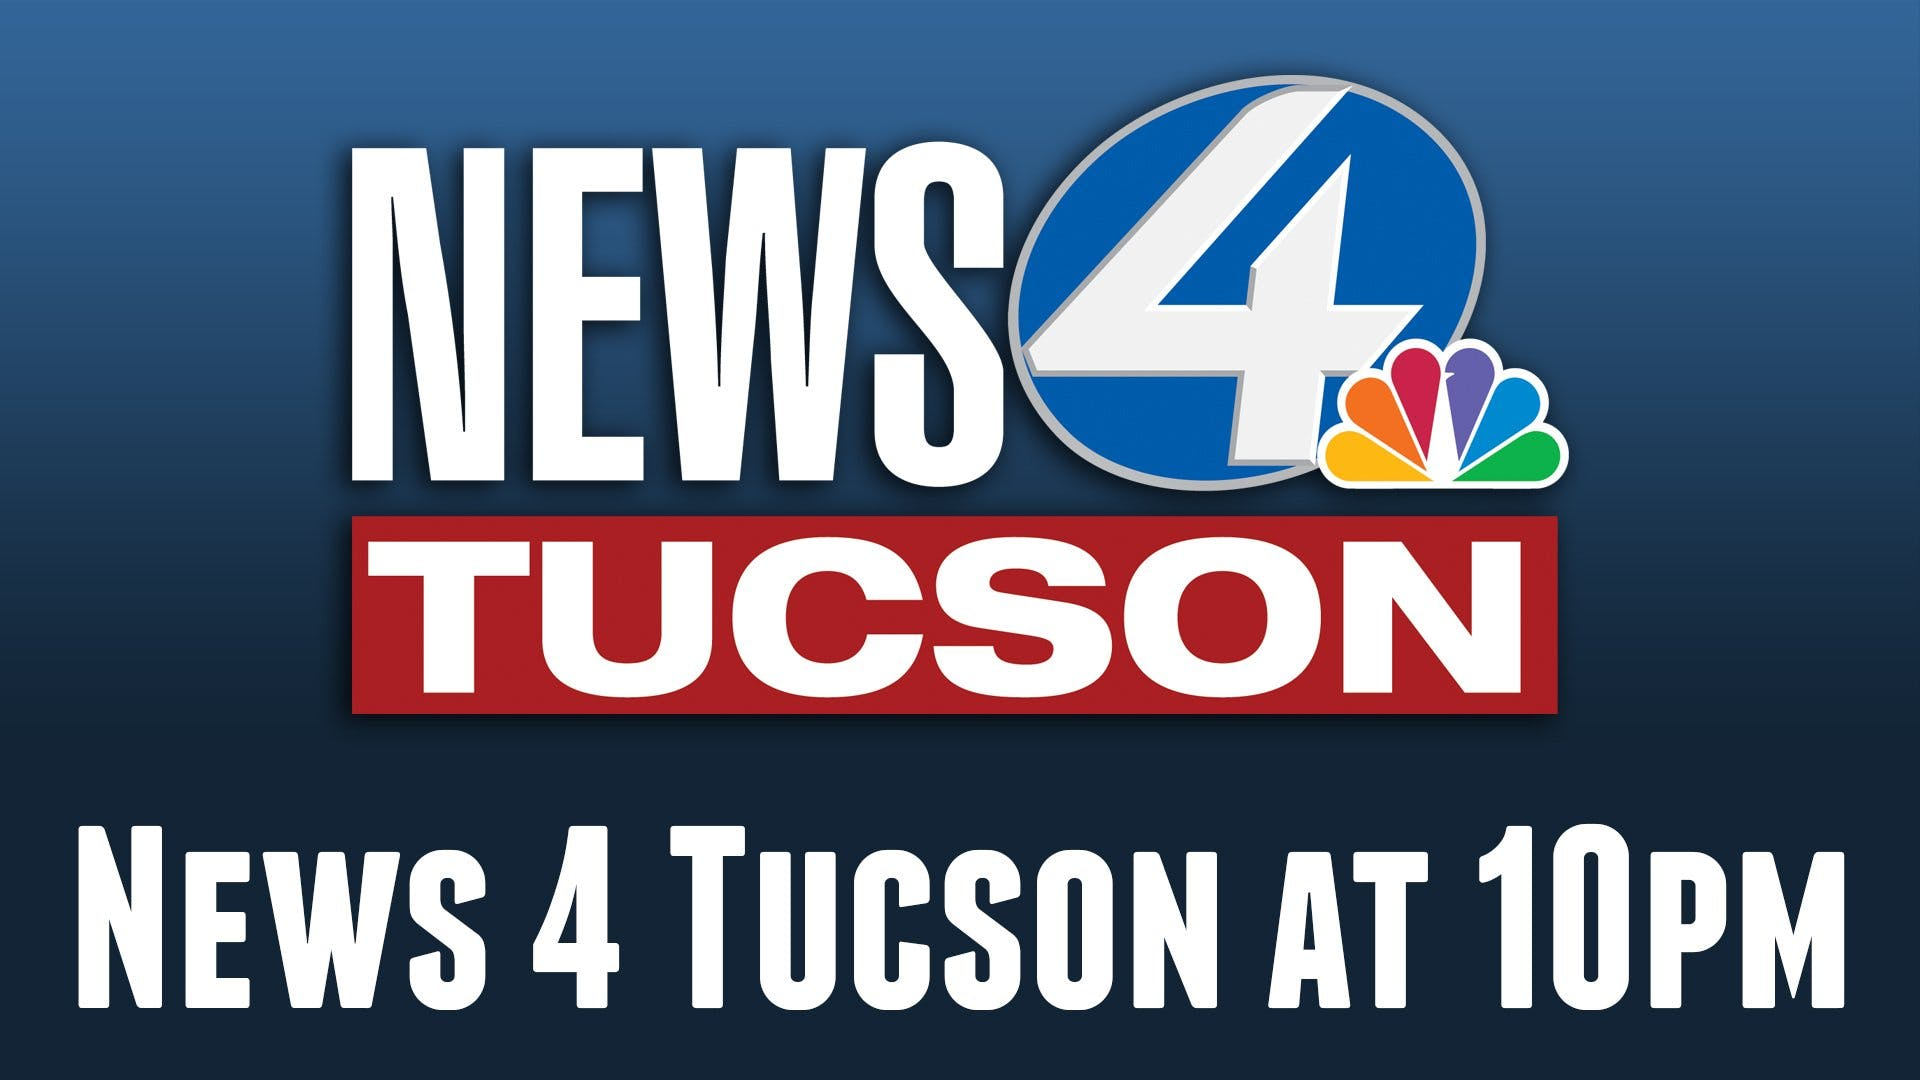 News 4 Tucson >> Watch News 4 Tucson At 10pm Stream On Fubotv Free Trial